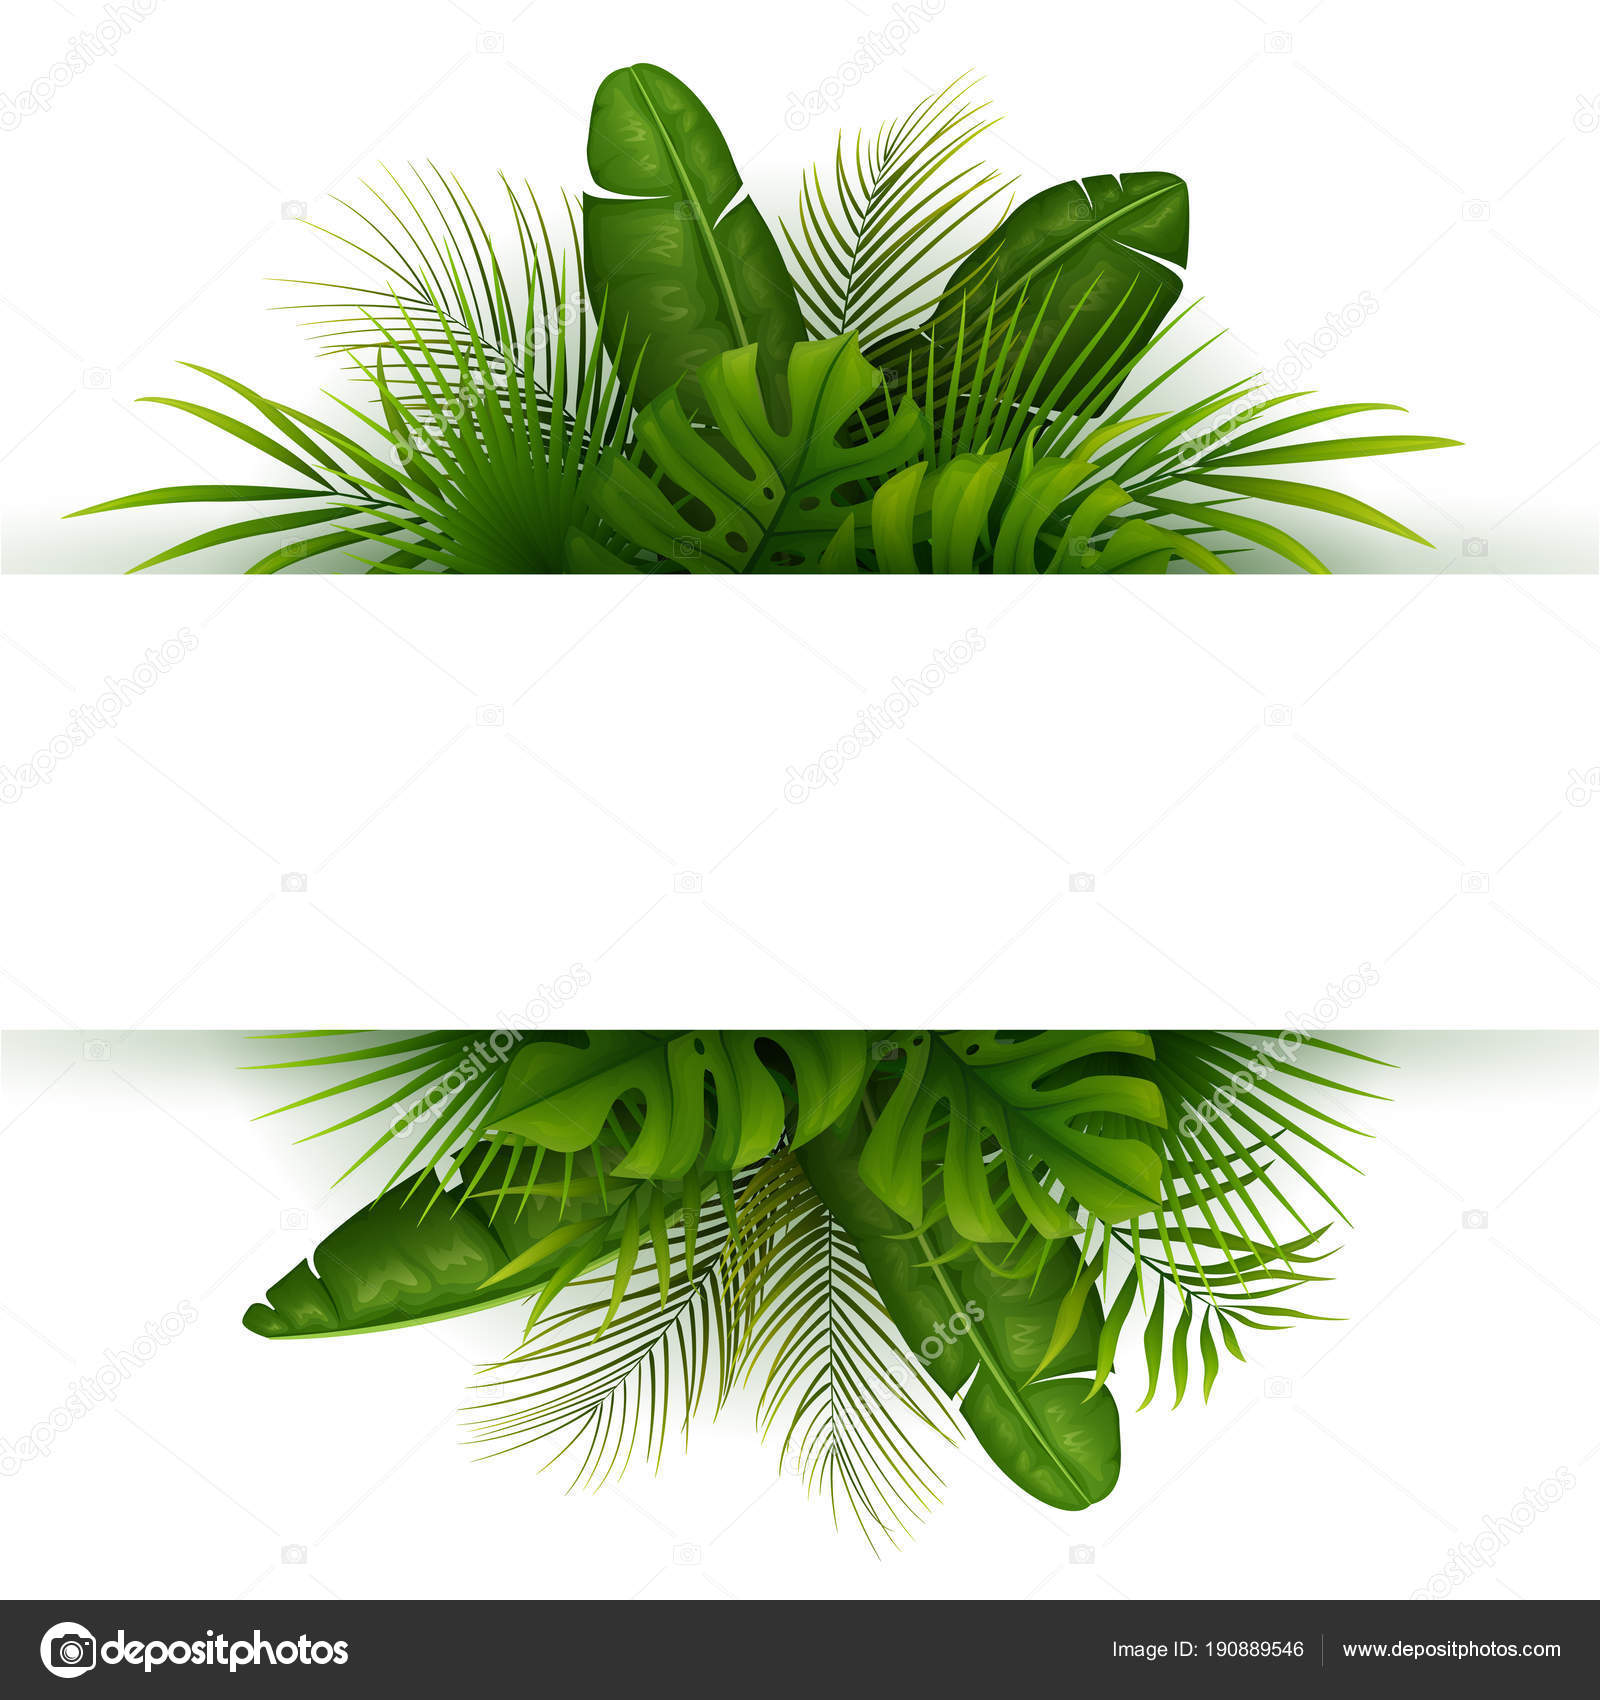 Tropical Leaves Plants Palm Trees Leaves White Background Stock Vector C Dreamcreation01 190889546 The useful tropical plants database contains information on the edible, medicinal and many other uses of several thousand plants that can be grown in tropical regions. https depositphotos com 190889546 stock illustration tropical leaves plants palm trees html